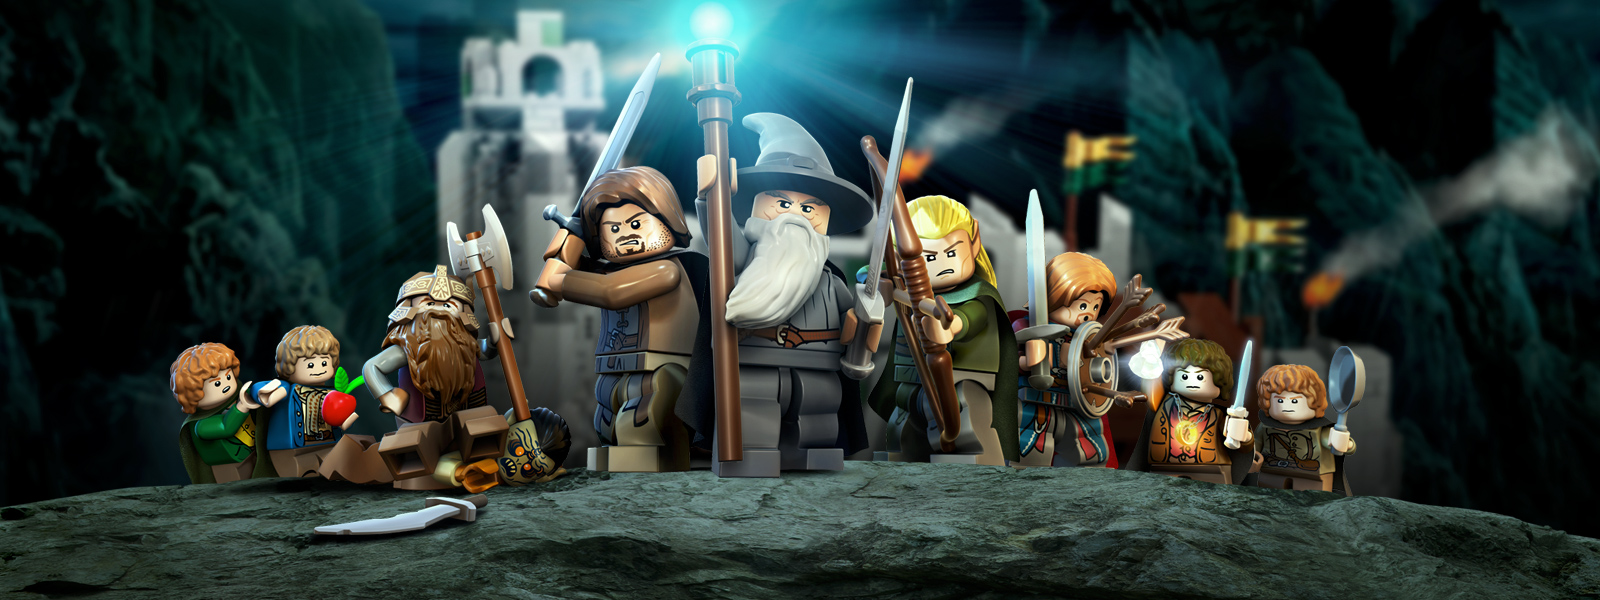 Lego-Lord-of-the-Rings-Free-Game-Setup-Download